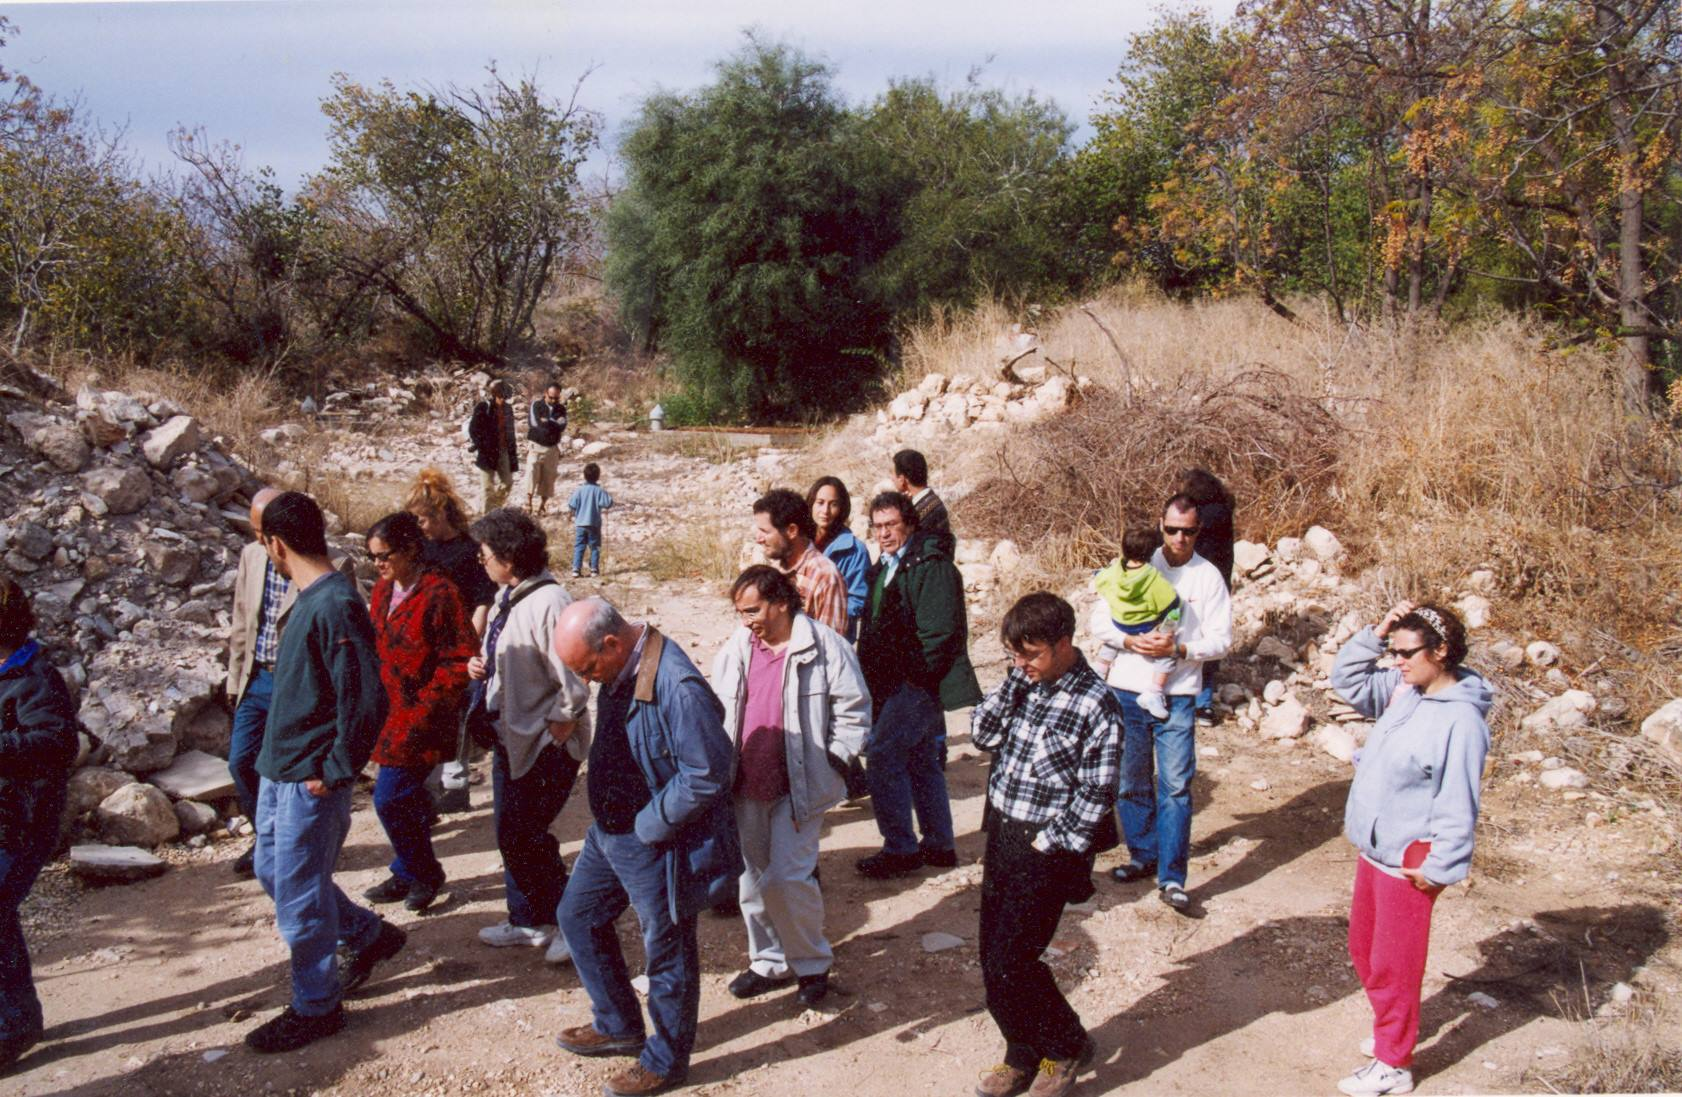 Reaching out to the general public to raise awareness to topics often ignored by mainstream media and to encourage a more critical discourse. A tour to Galilee, Winter 2001.